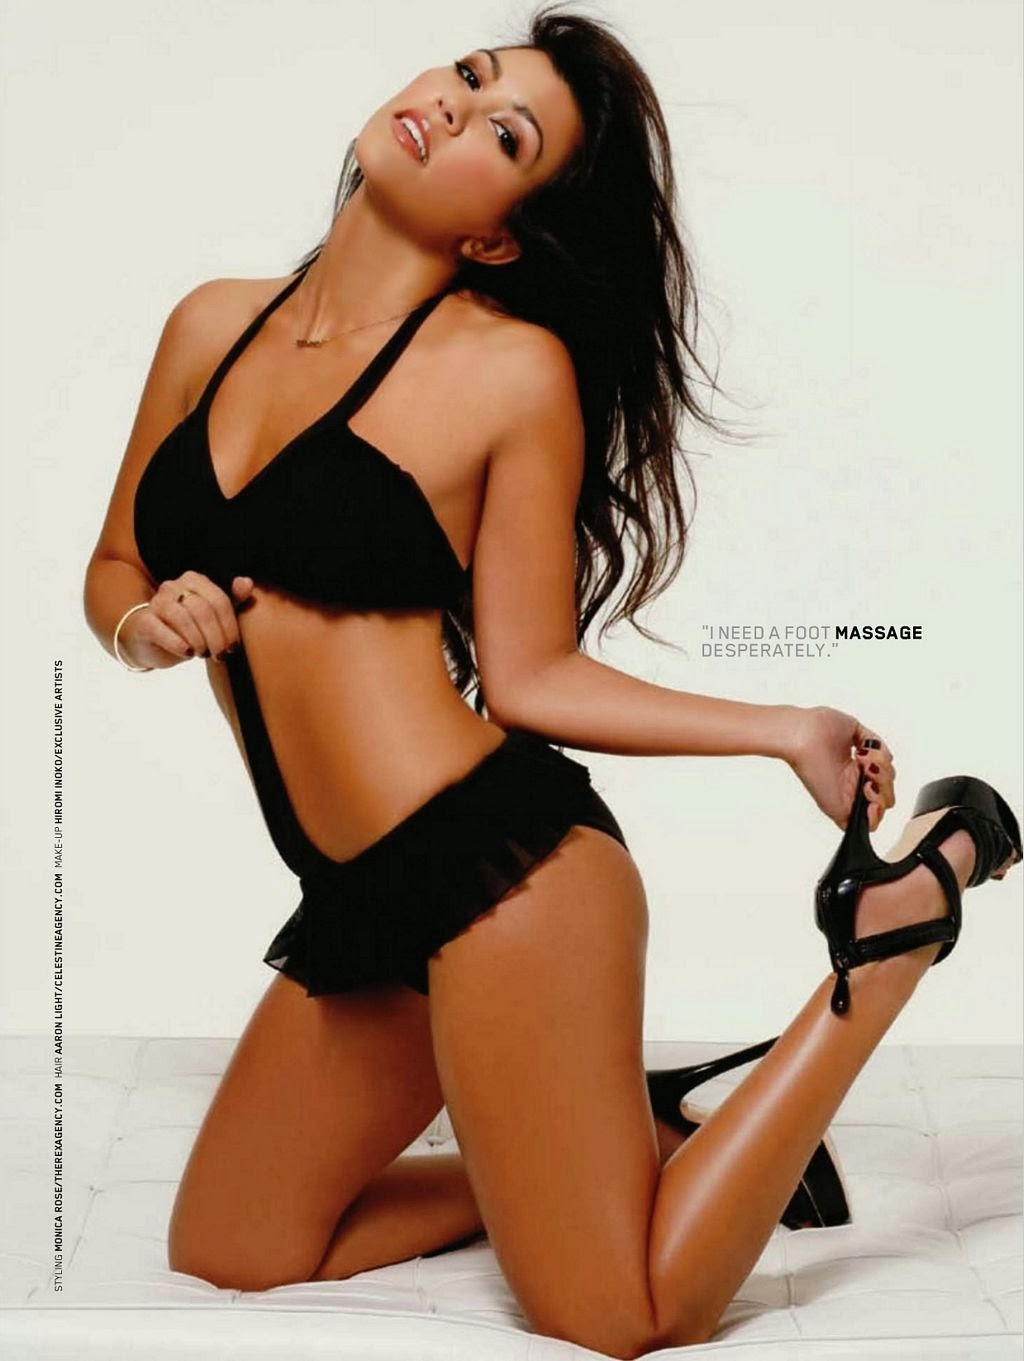 Kourtney Kardashian Maxim Photoshoot  Hot Celebs-2948